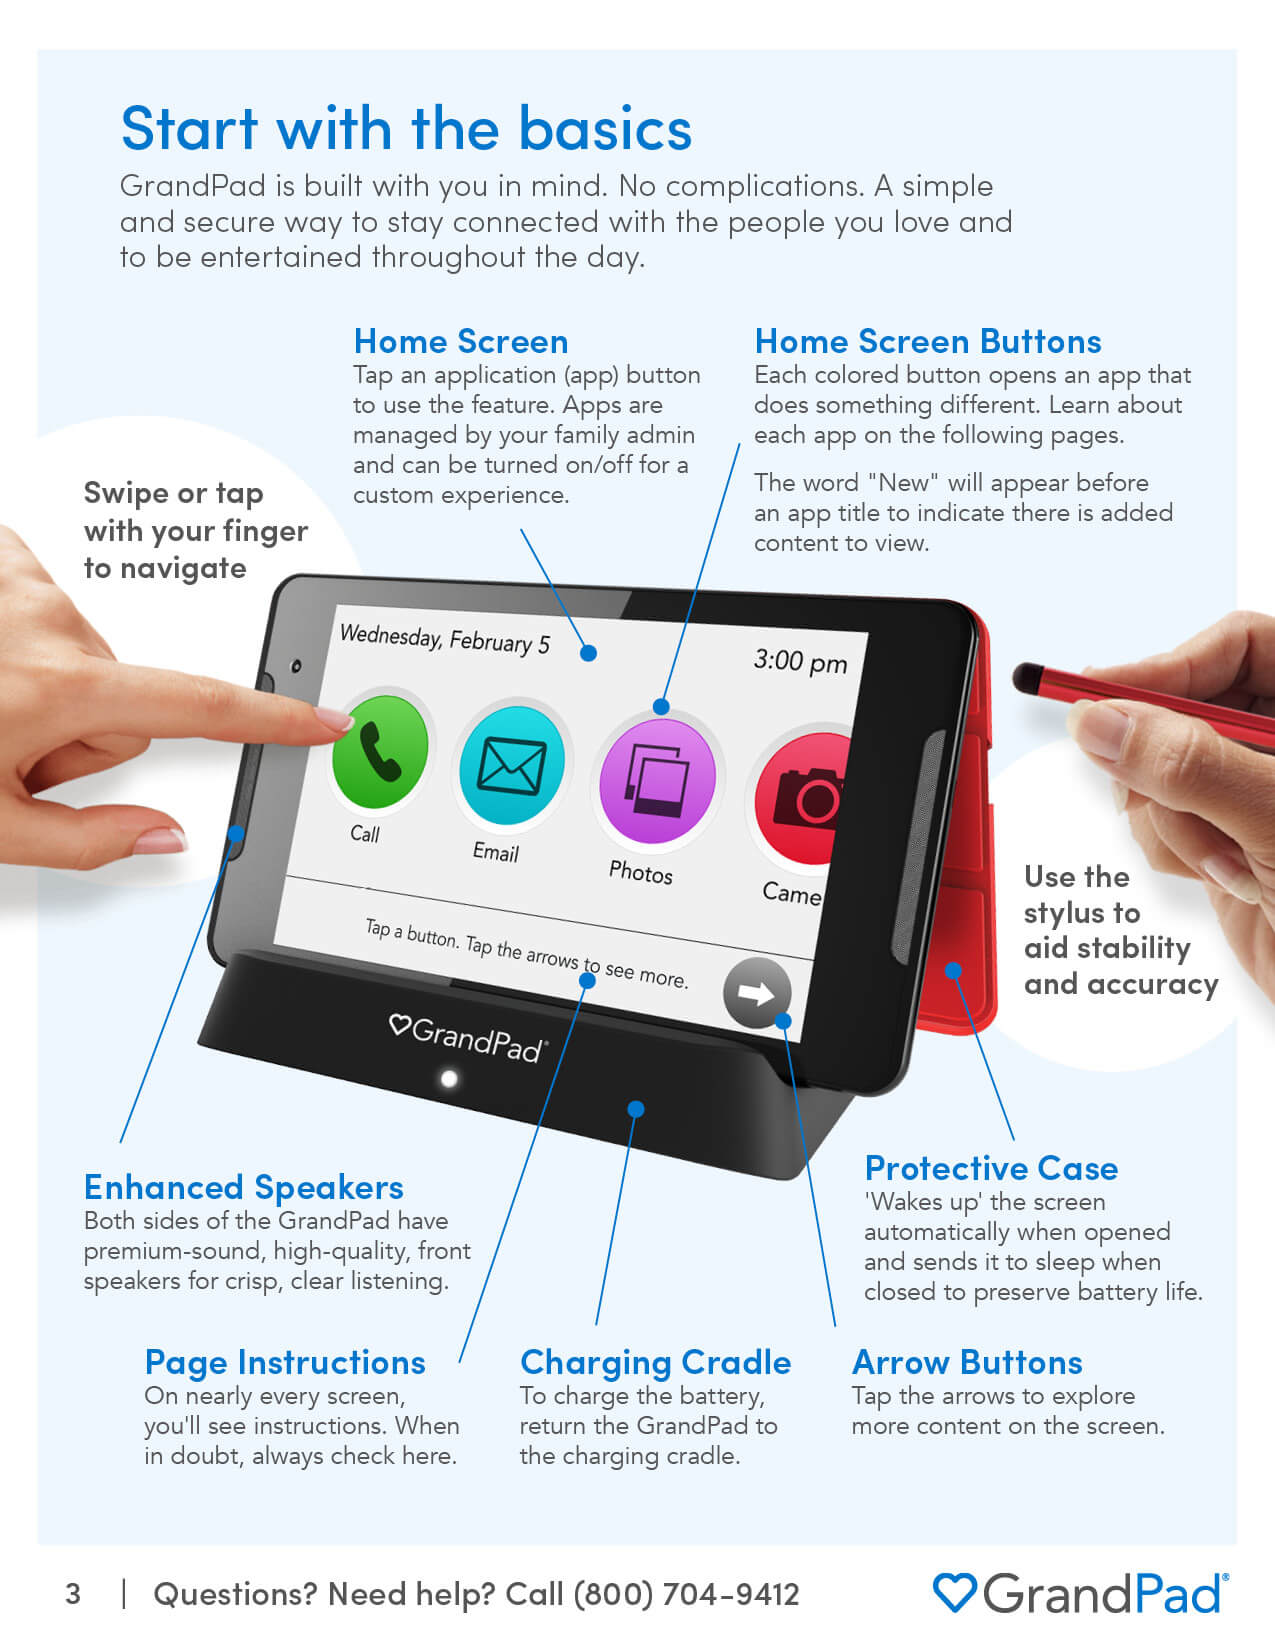 Basic overview of the GrandPad features and accessories